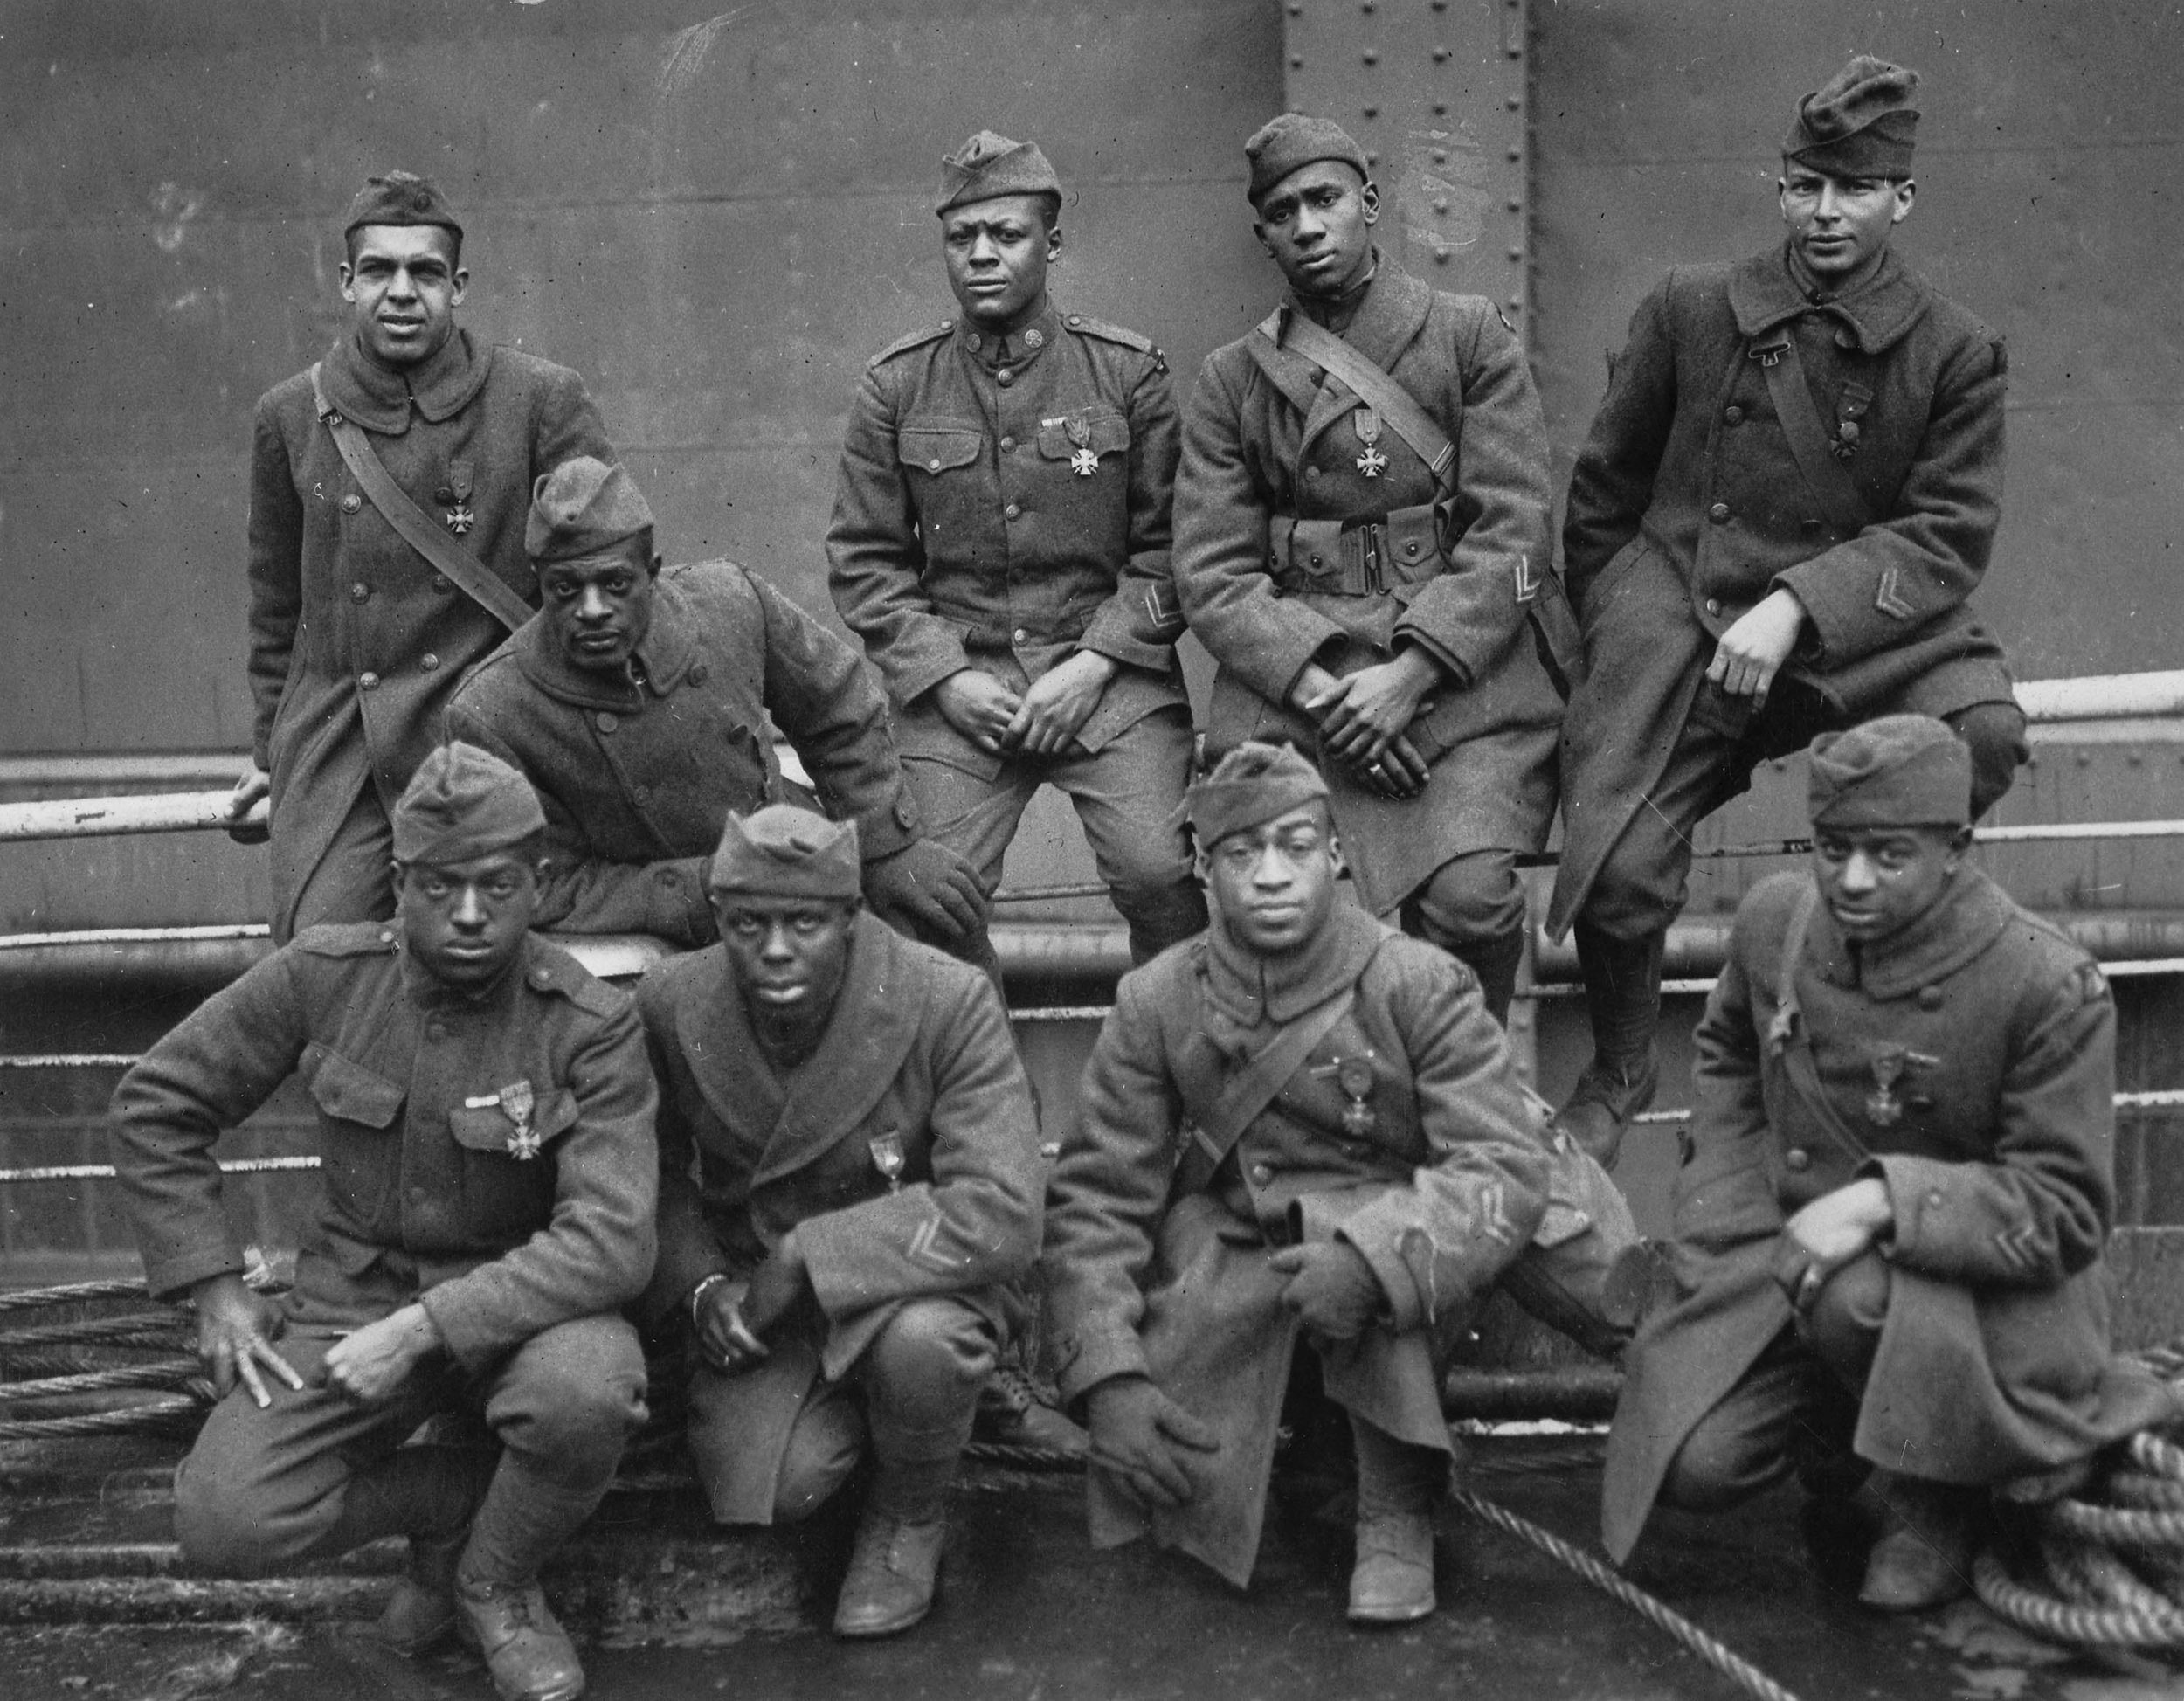 A group of soldiers pose from the 93rd Division's 369th Infantry Regiment, which was nicknamed the 'Harlem Hellfighters.' /  US National Archives